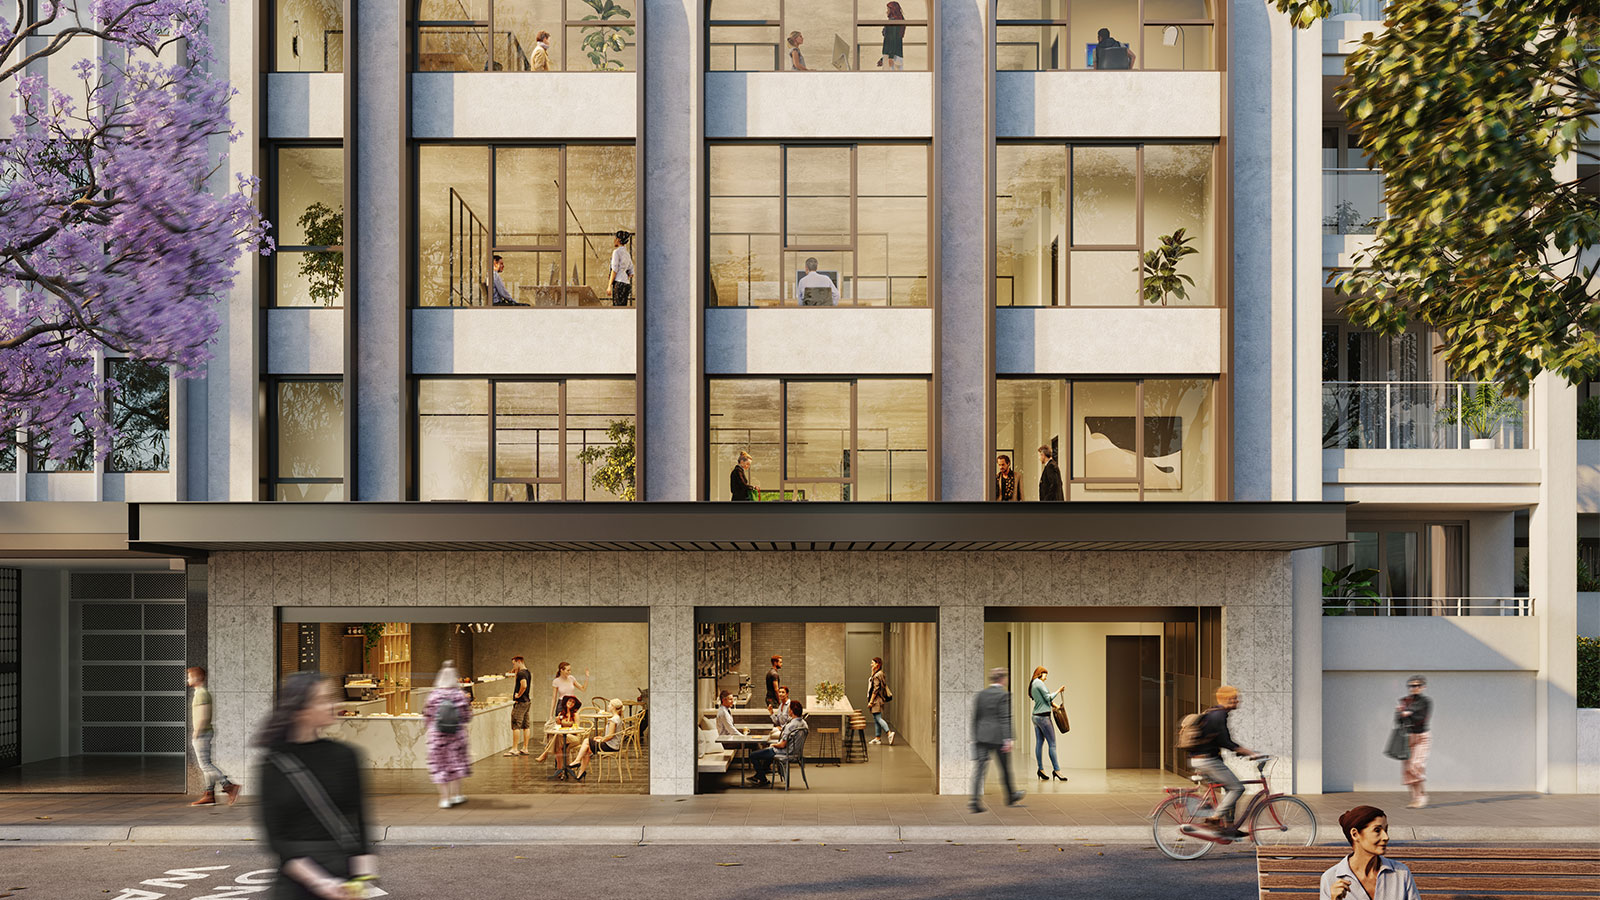 ▲ Renders of the planned upgrade by Fortis of its new site at Guilfoyle Avenue in Double Bay.